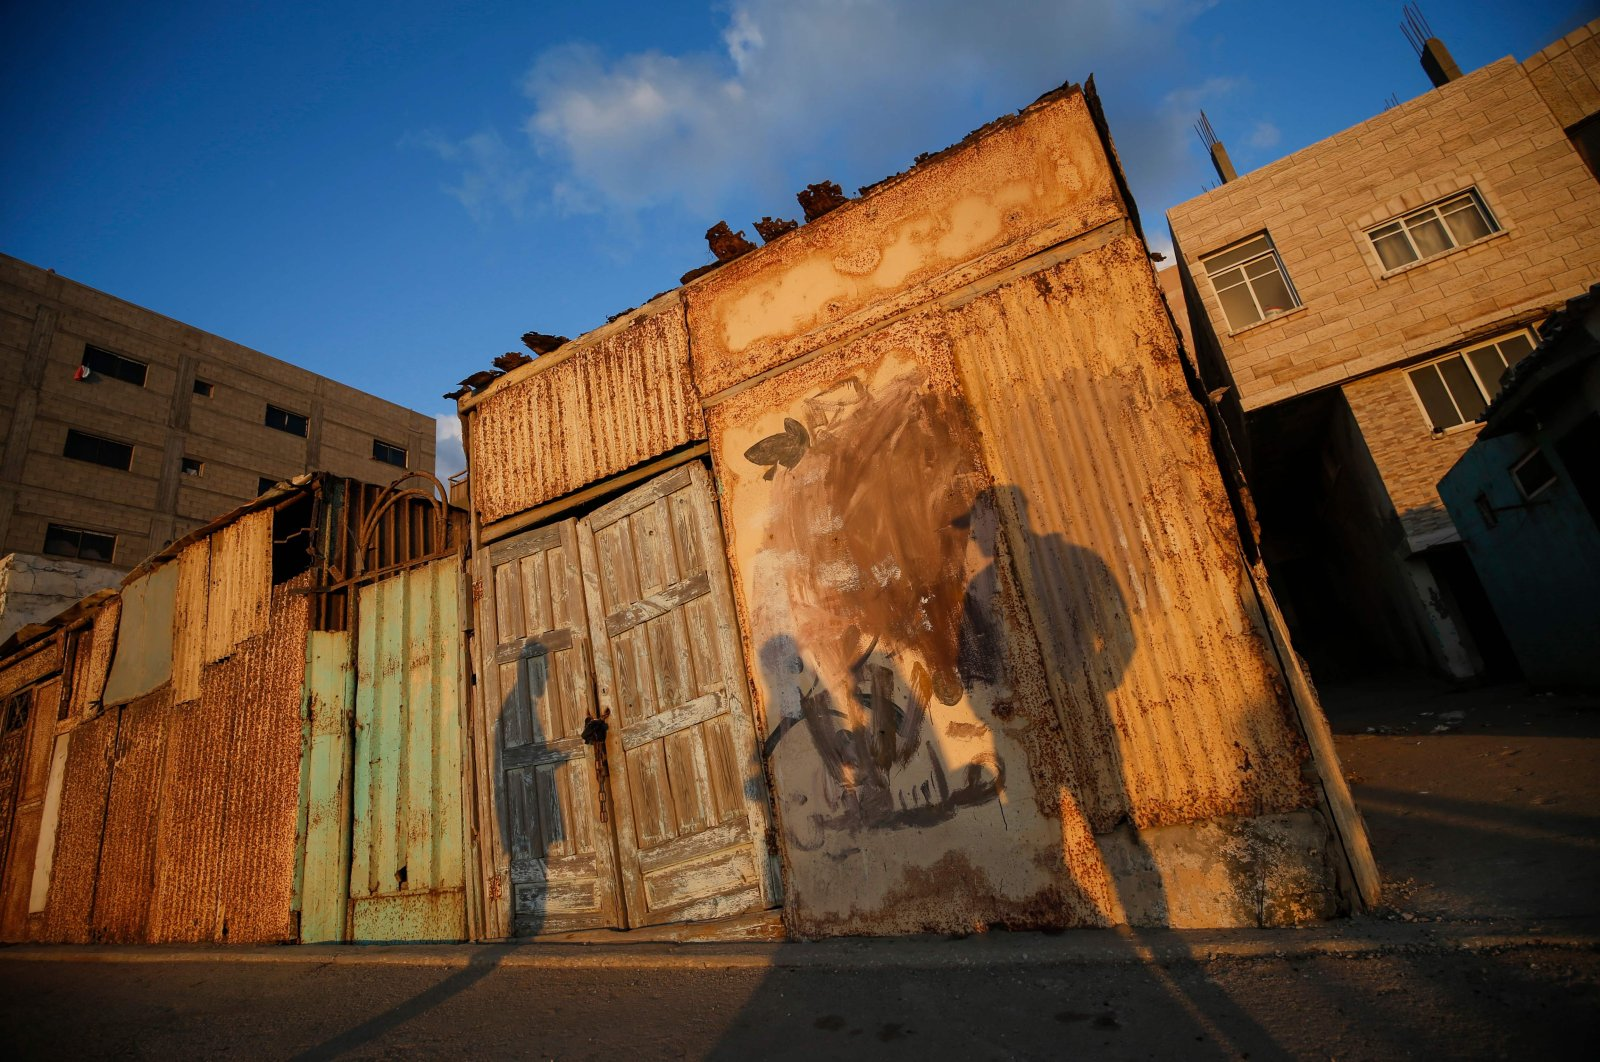 Palestinian men cast their shadows on a bangalow, as they gather at sunset in Gaza City, May 28, 2020. (AFP Photo)